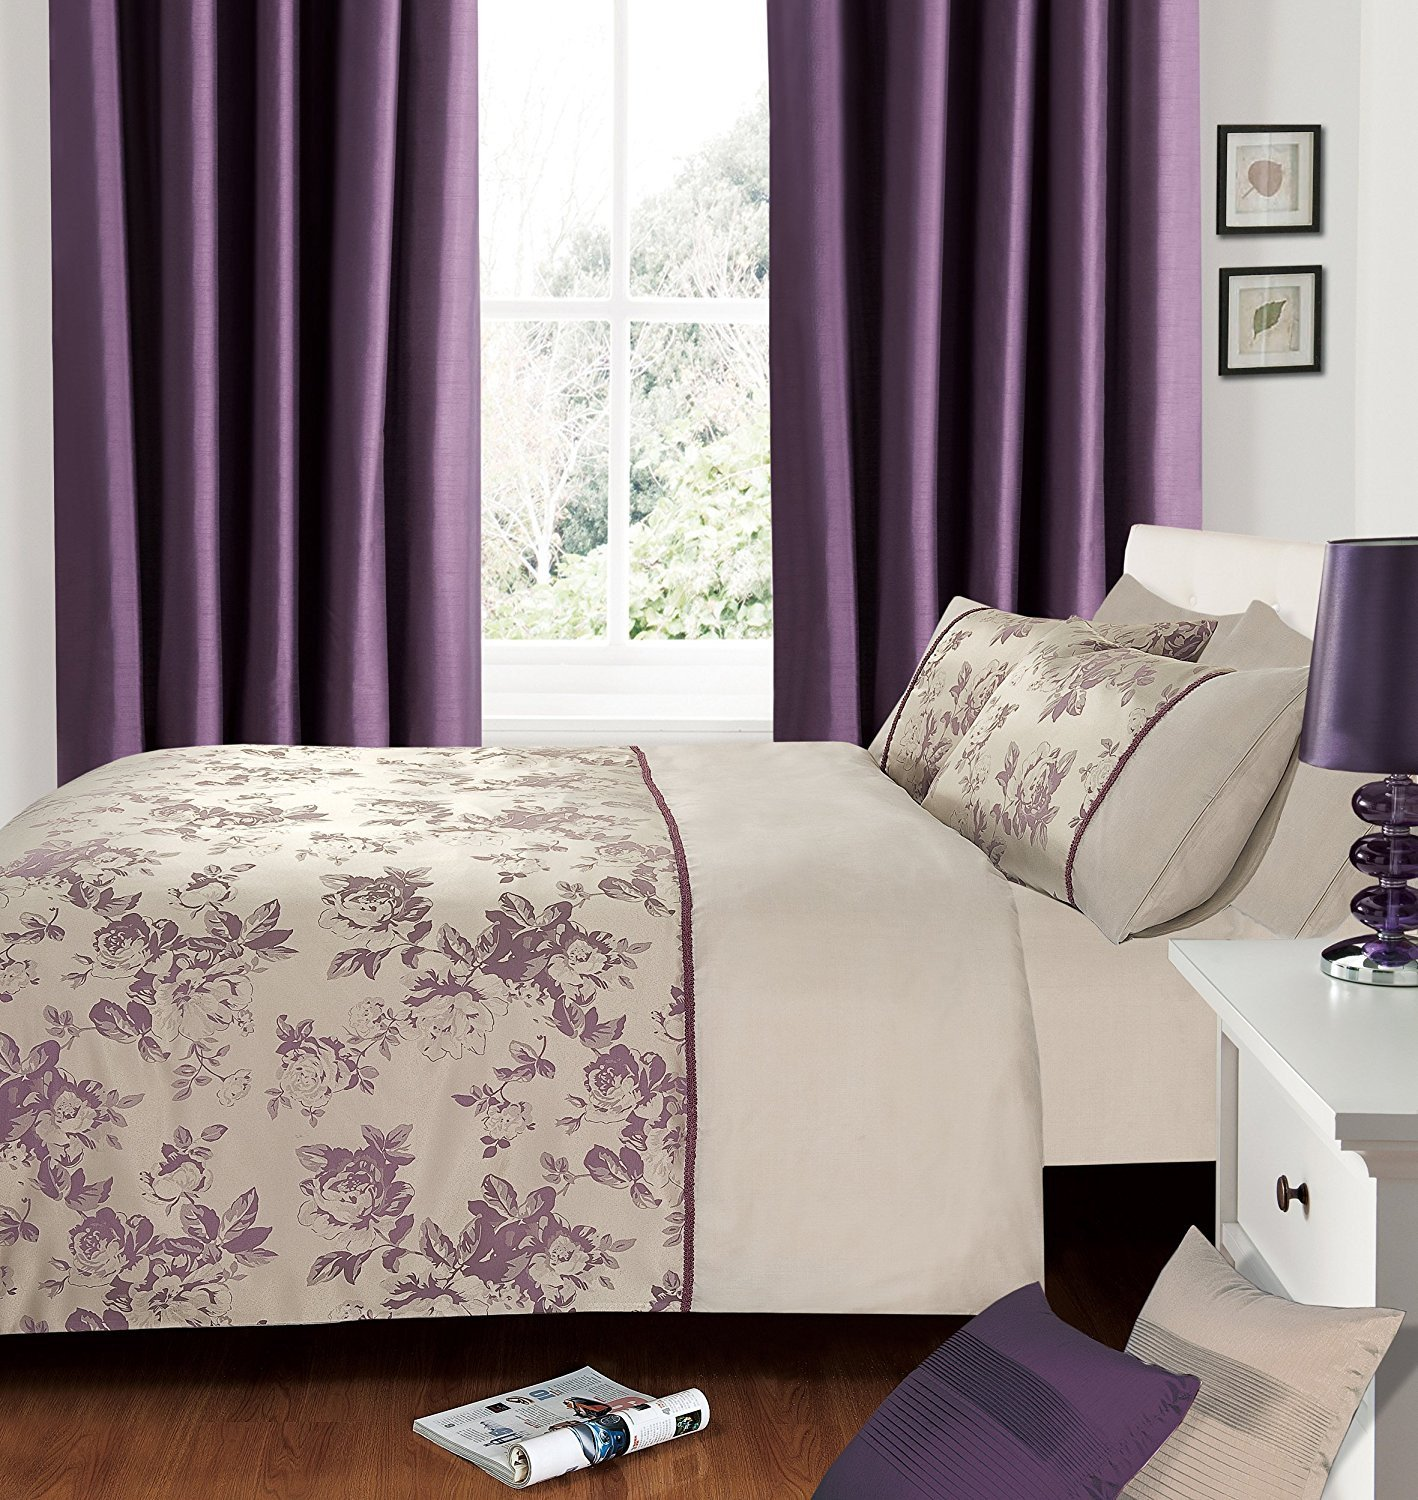 Bedroom Bedding and Curtain Set Inspirational 62 Most top Notch Purple Bedding Sets Mauve Duvet Cover